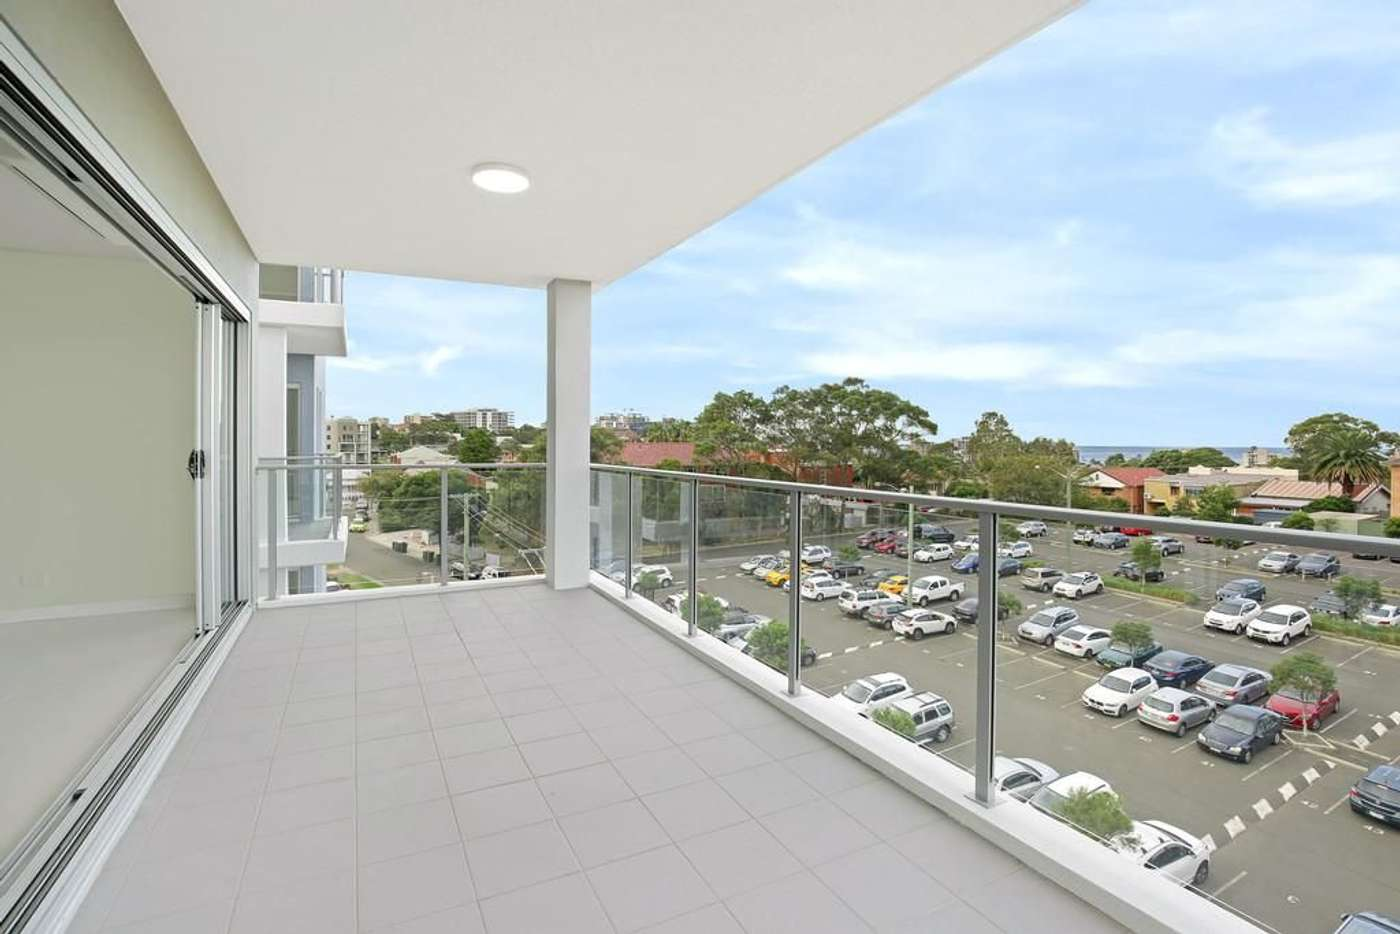 Sixth view of Homely unit listing, 10/10 Thomas Street, Wollongong NSW 2500